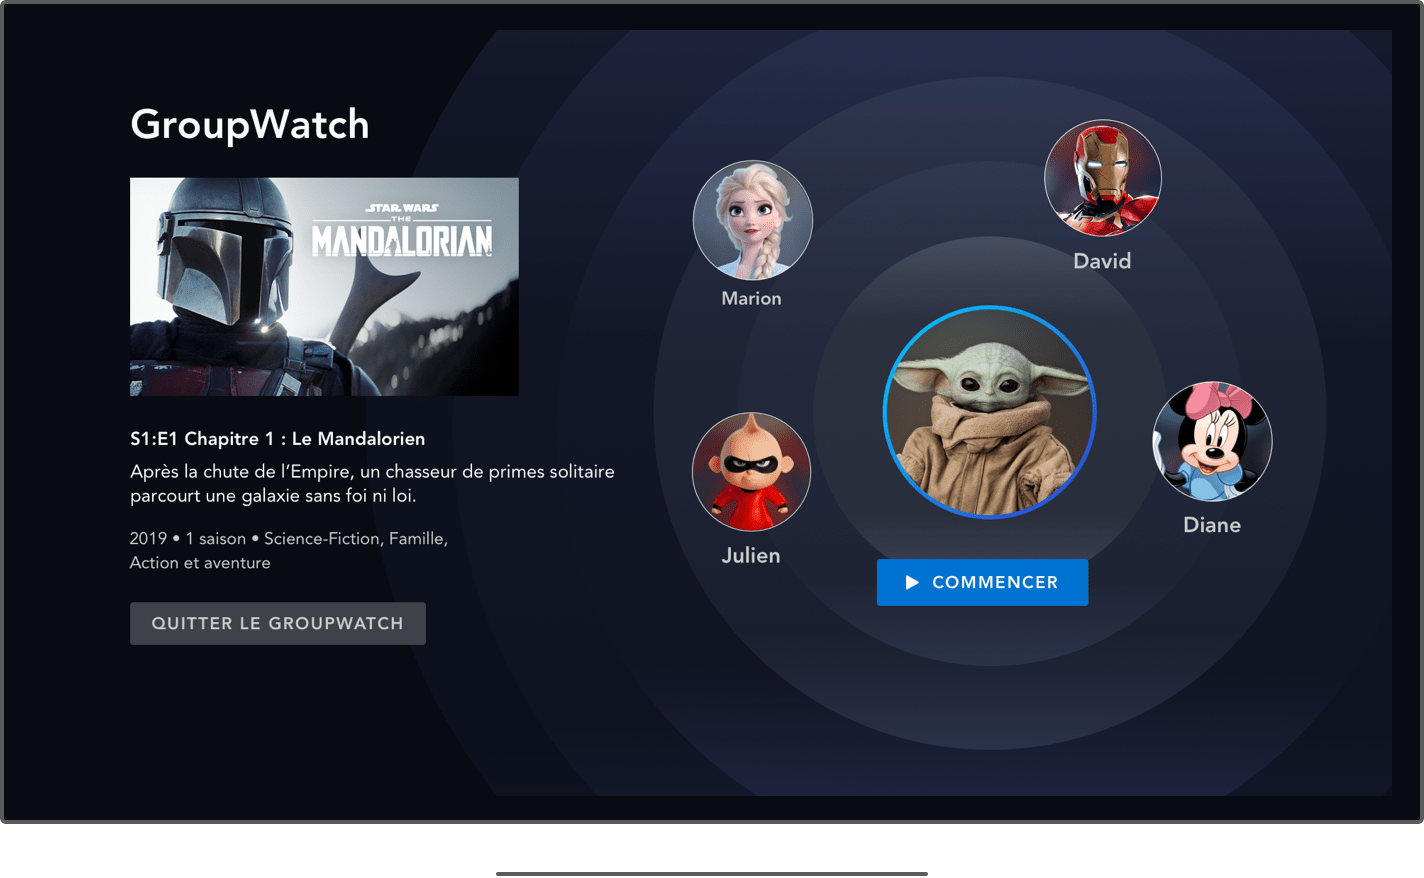 The new GroupWatch feature on Disney +